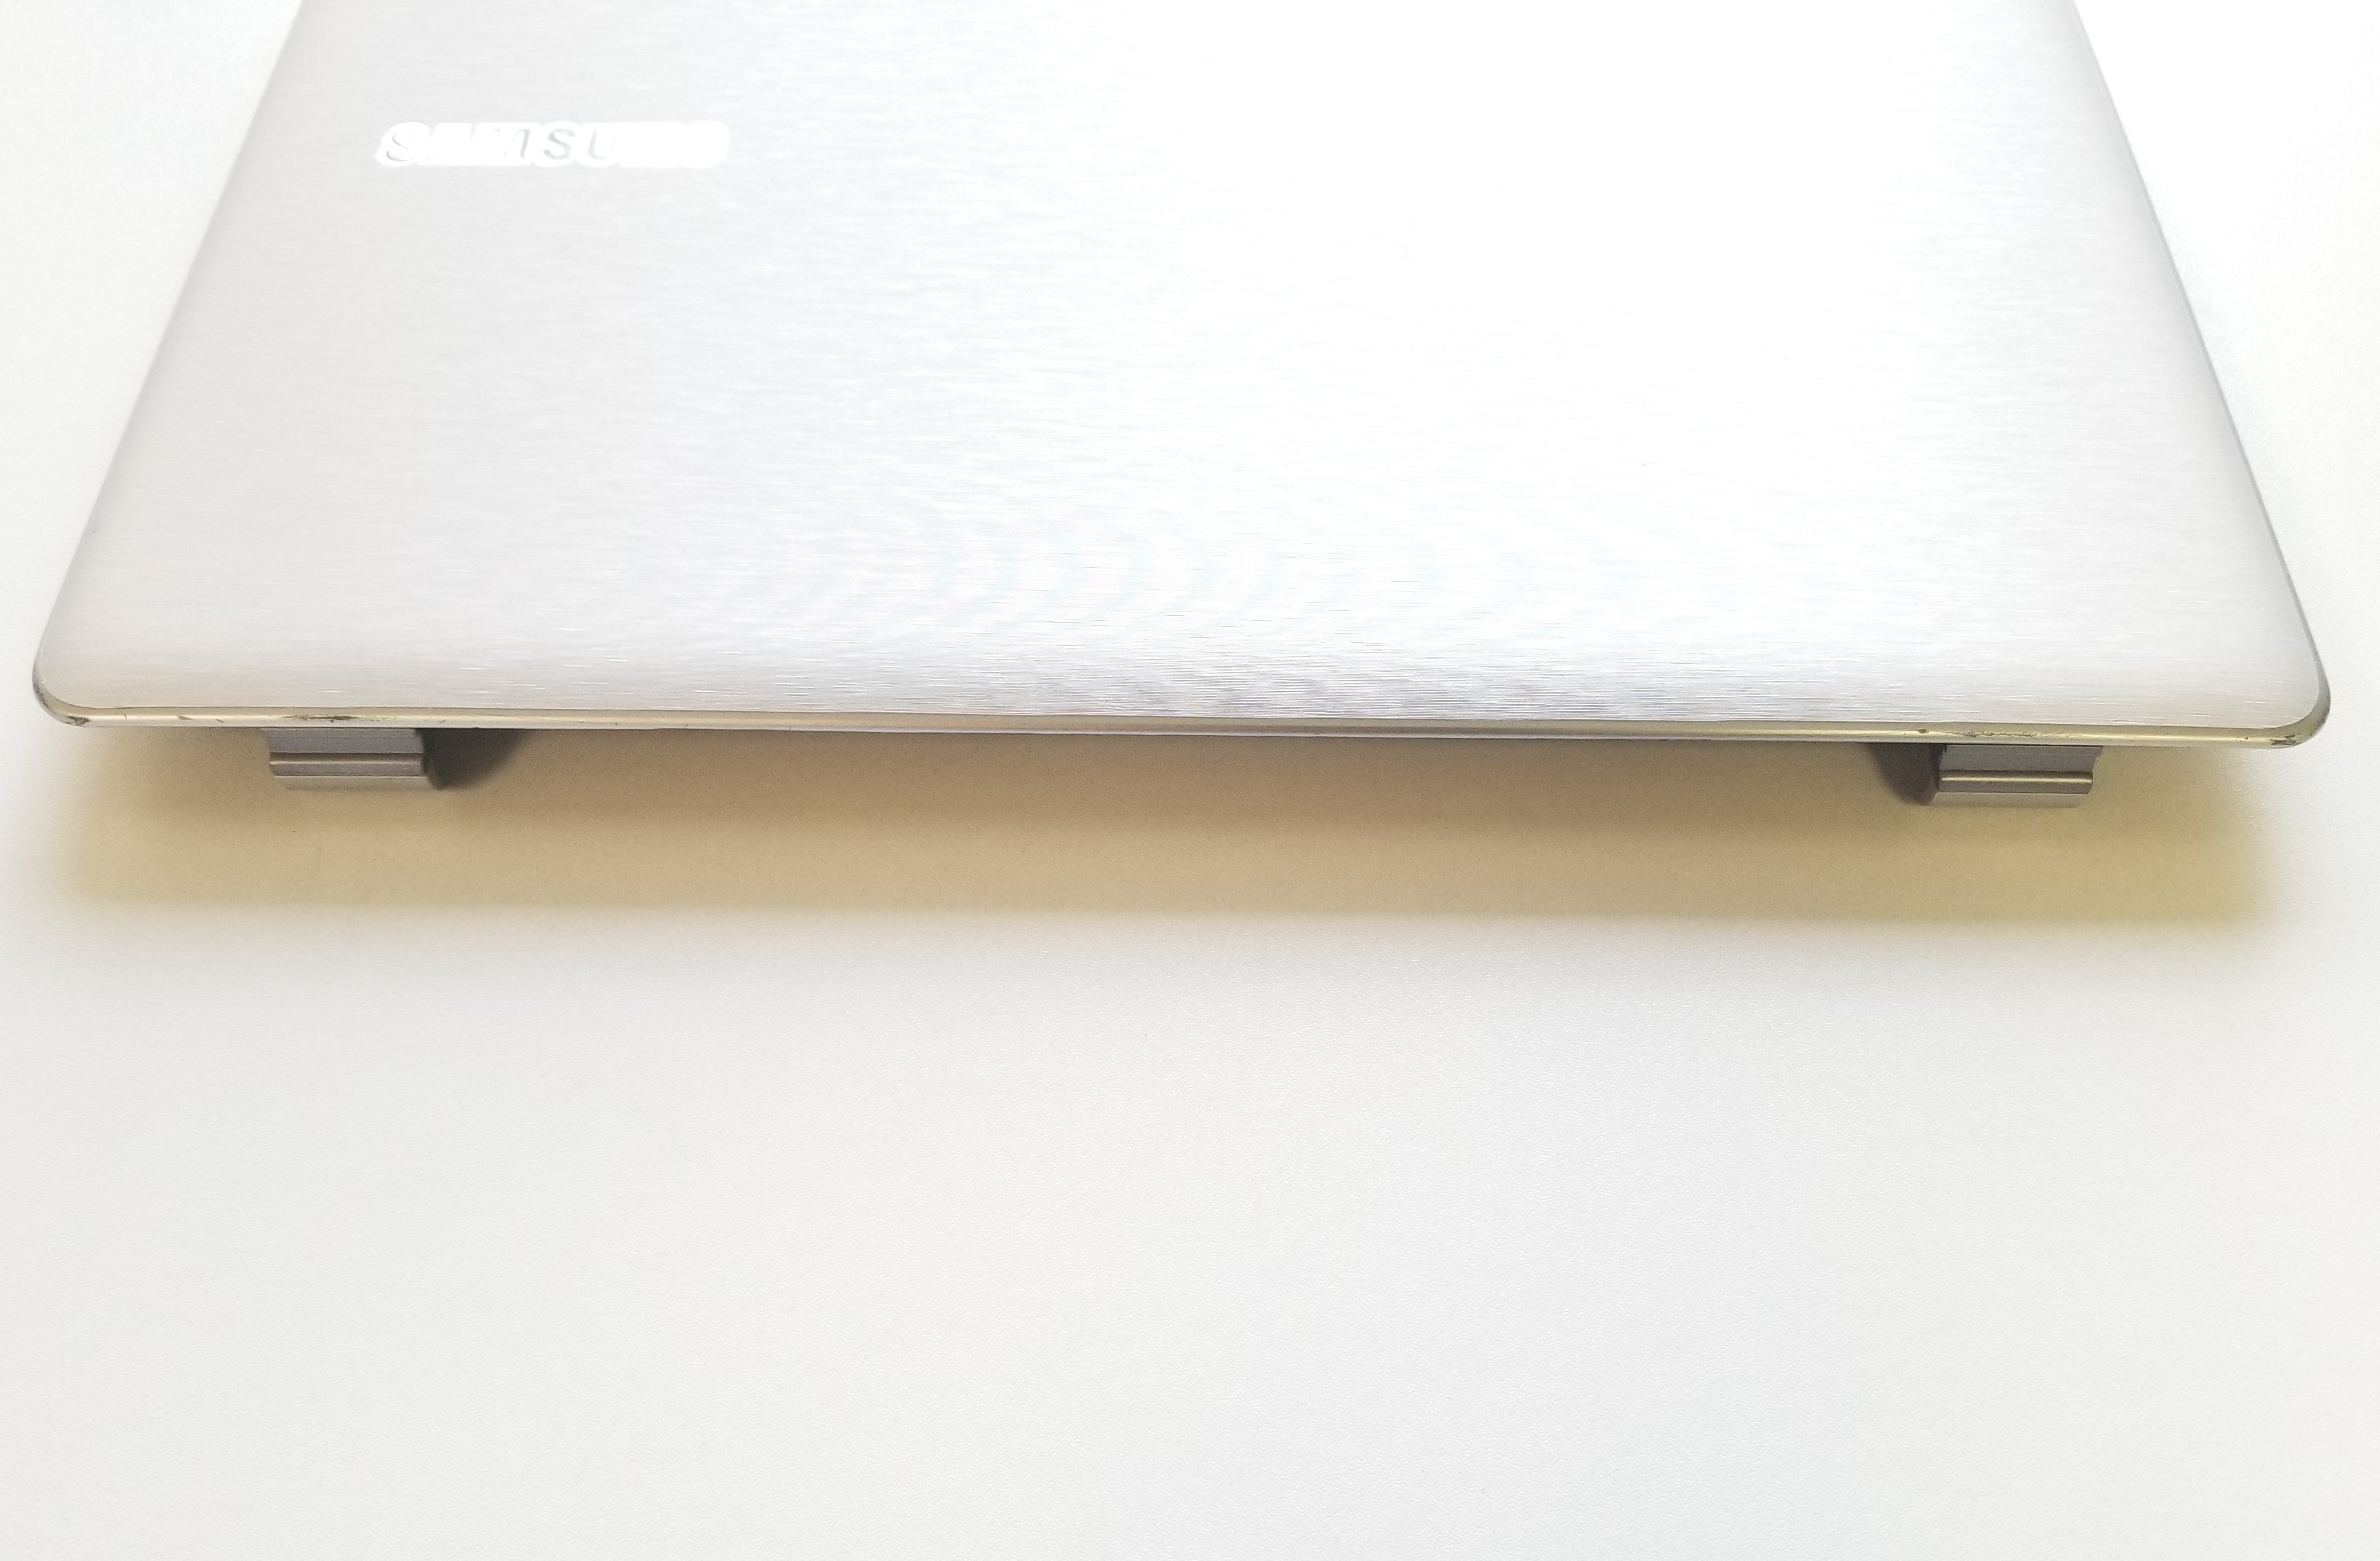 Samsung XE550C22 Chromebook LCD Back Cover - BA75-03427A